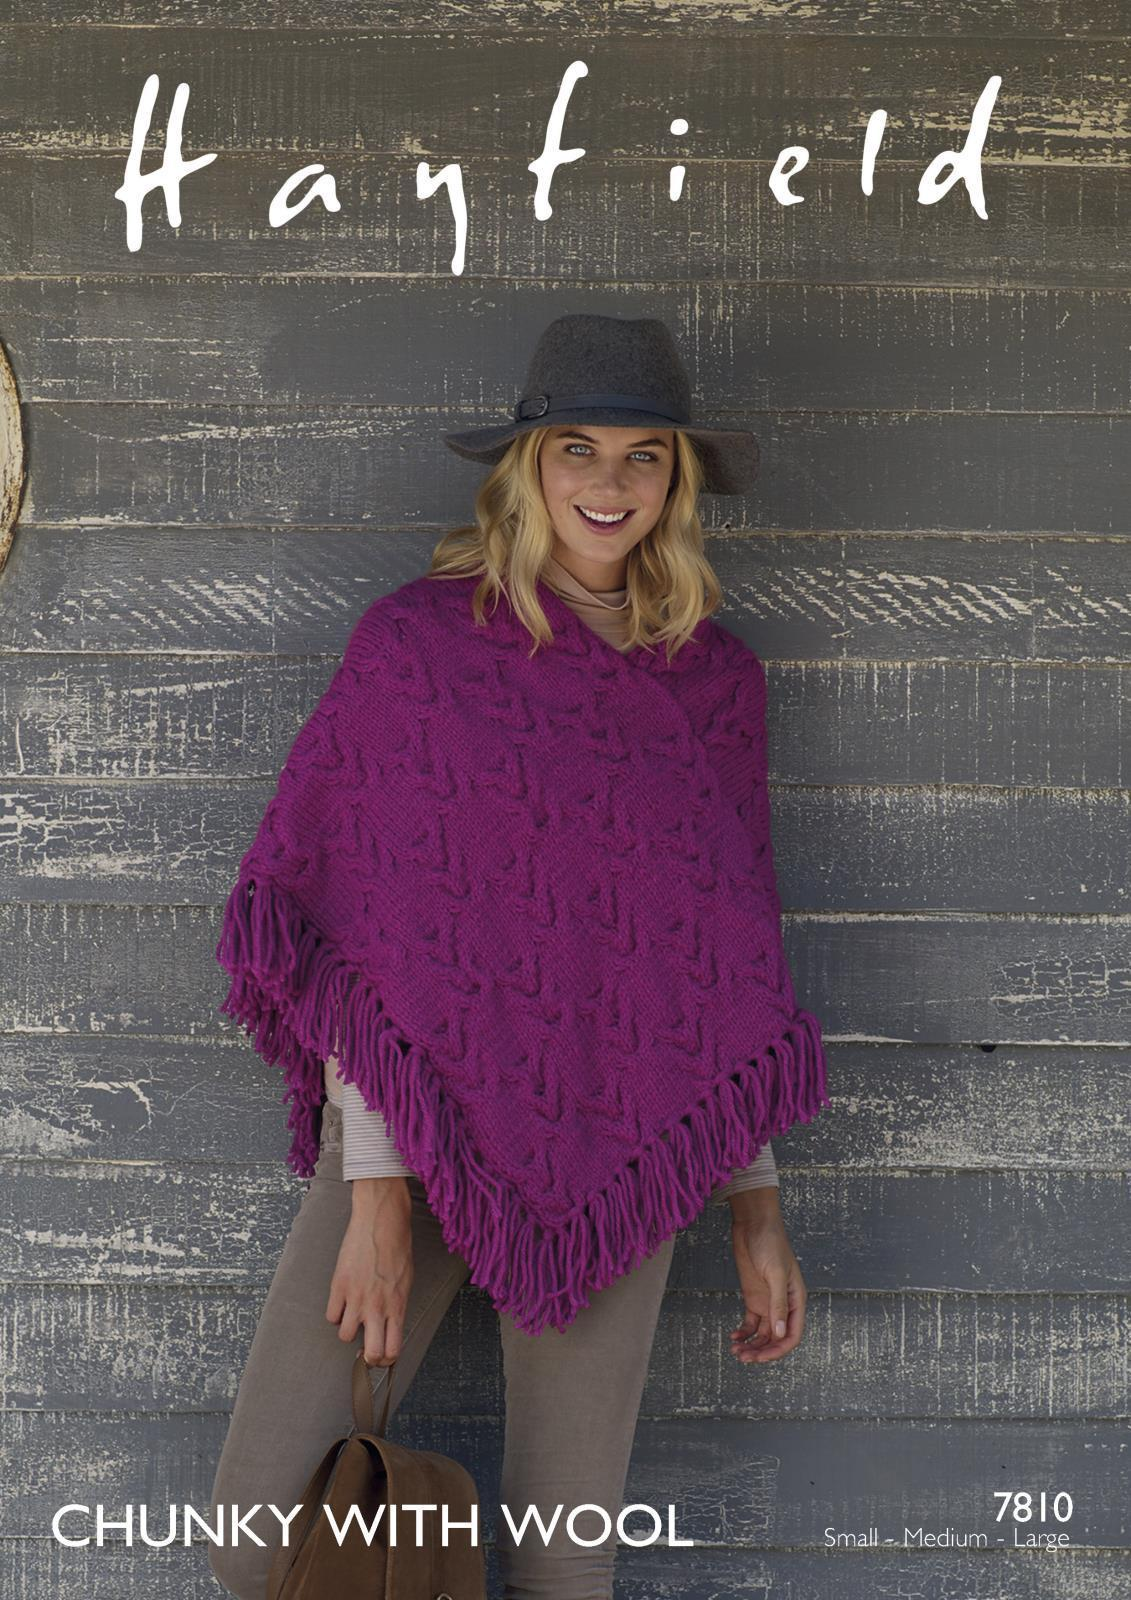 7810 - HAYFIELD CHUNKY WITH WOOL PONCHO KNITTING PATTERN - SMALL ...